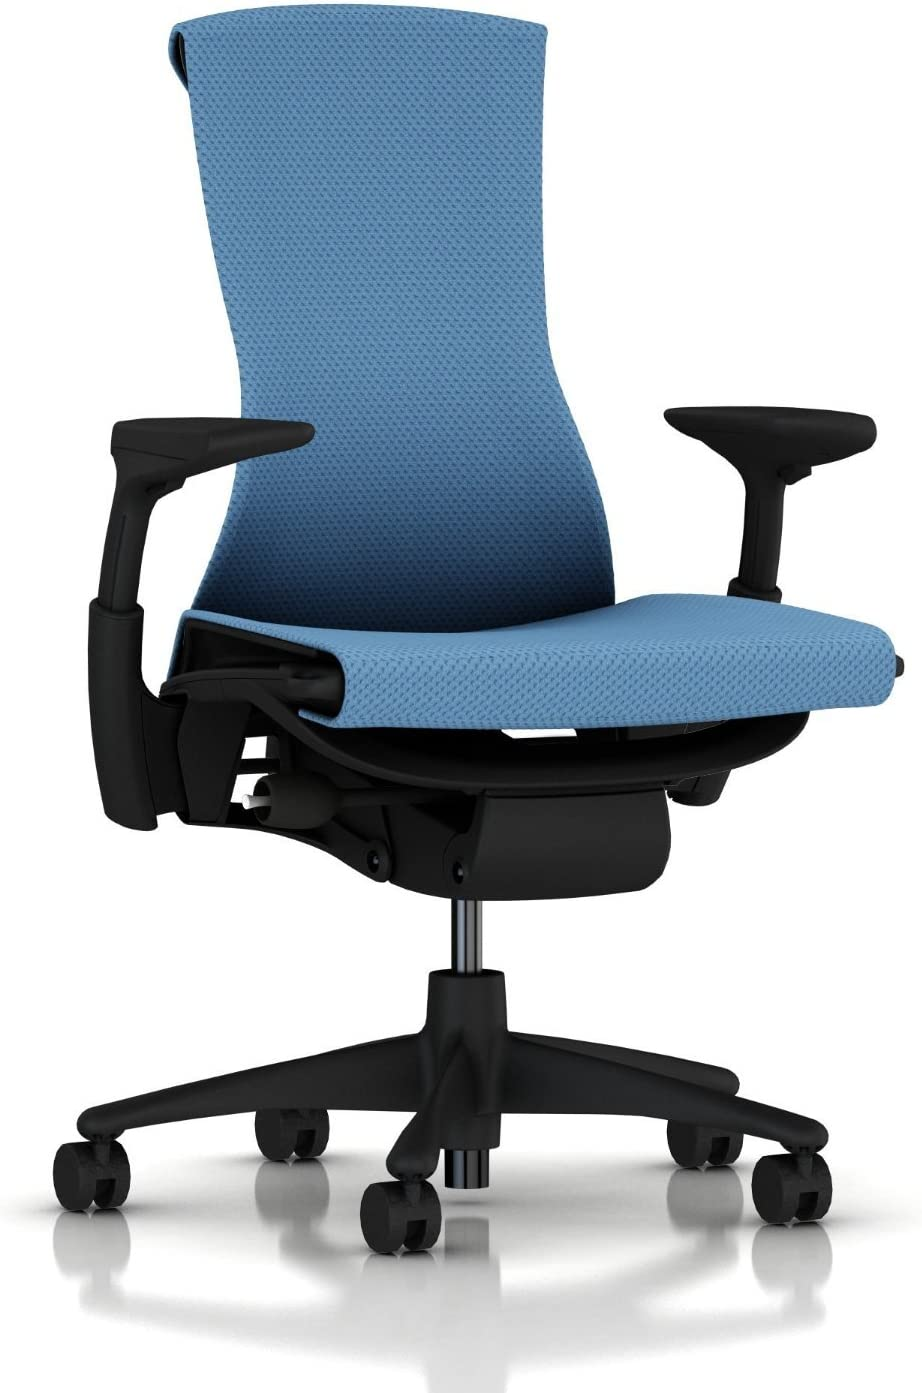 Herman Miller Embody Ergonomic Office Chair